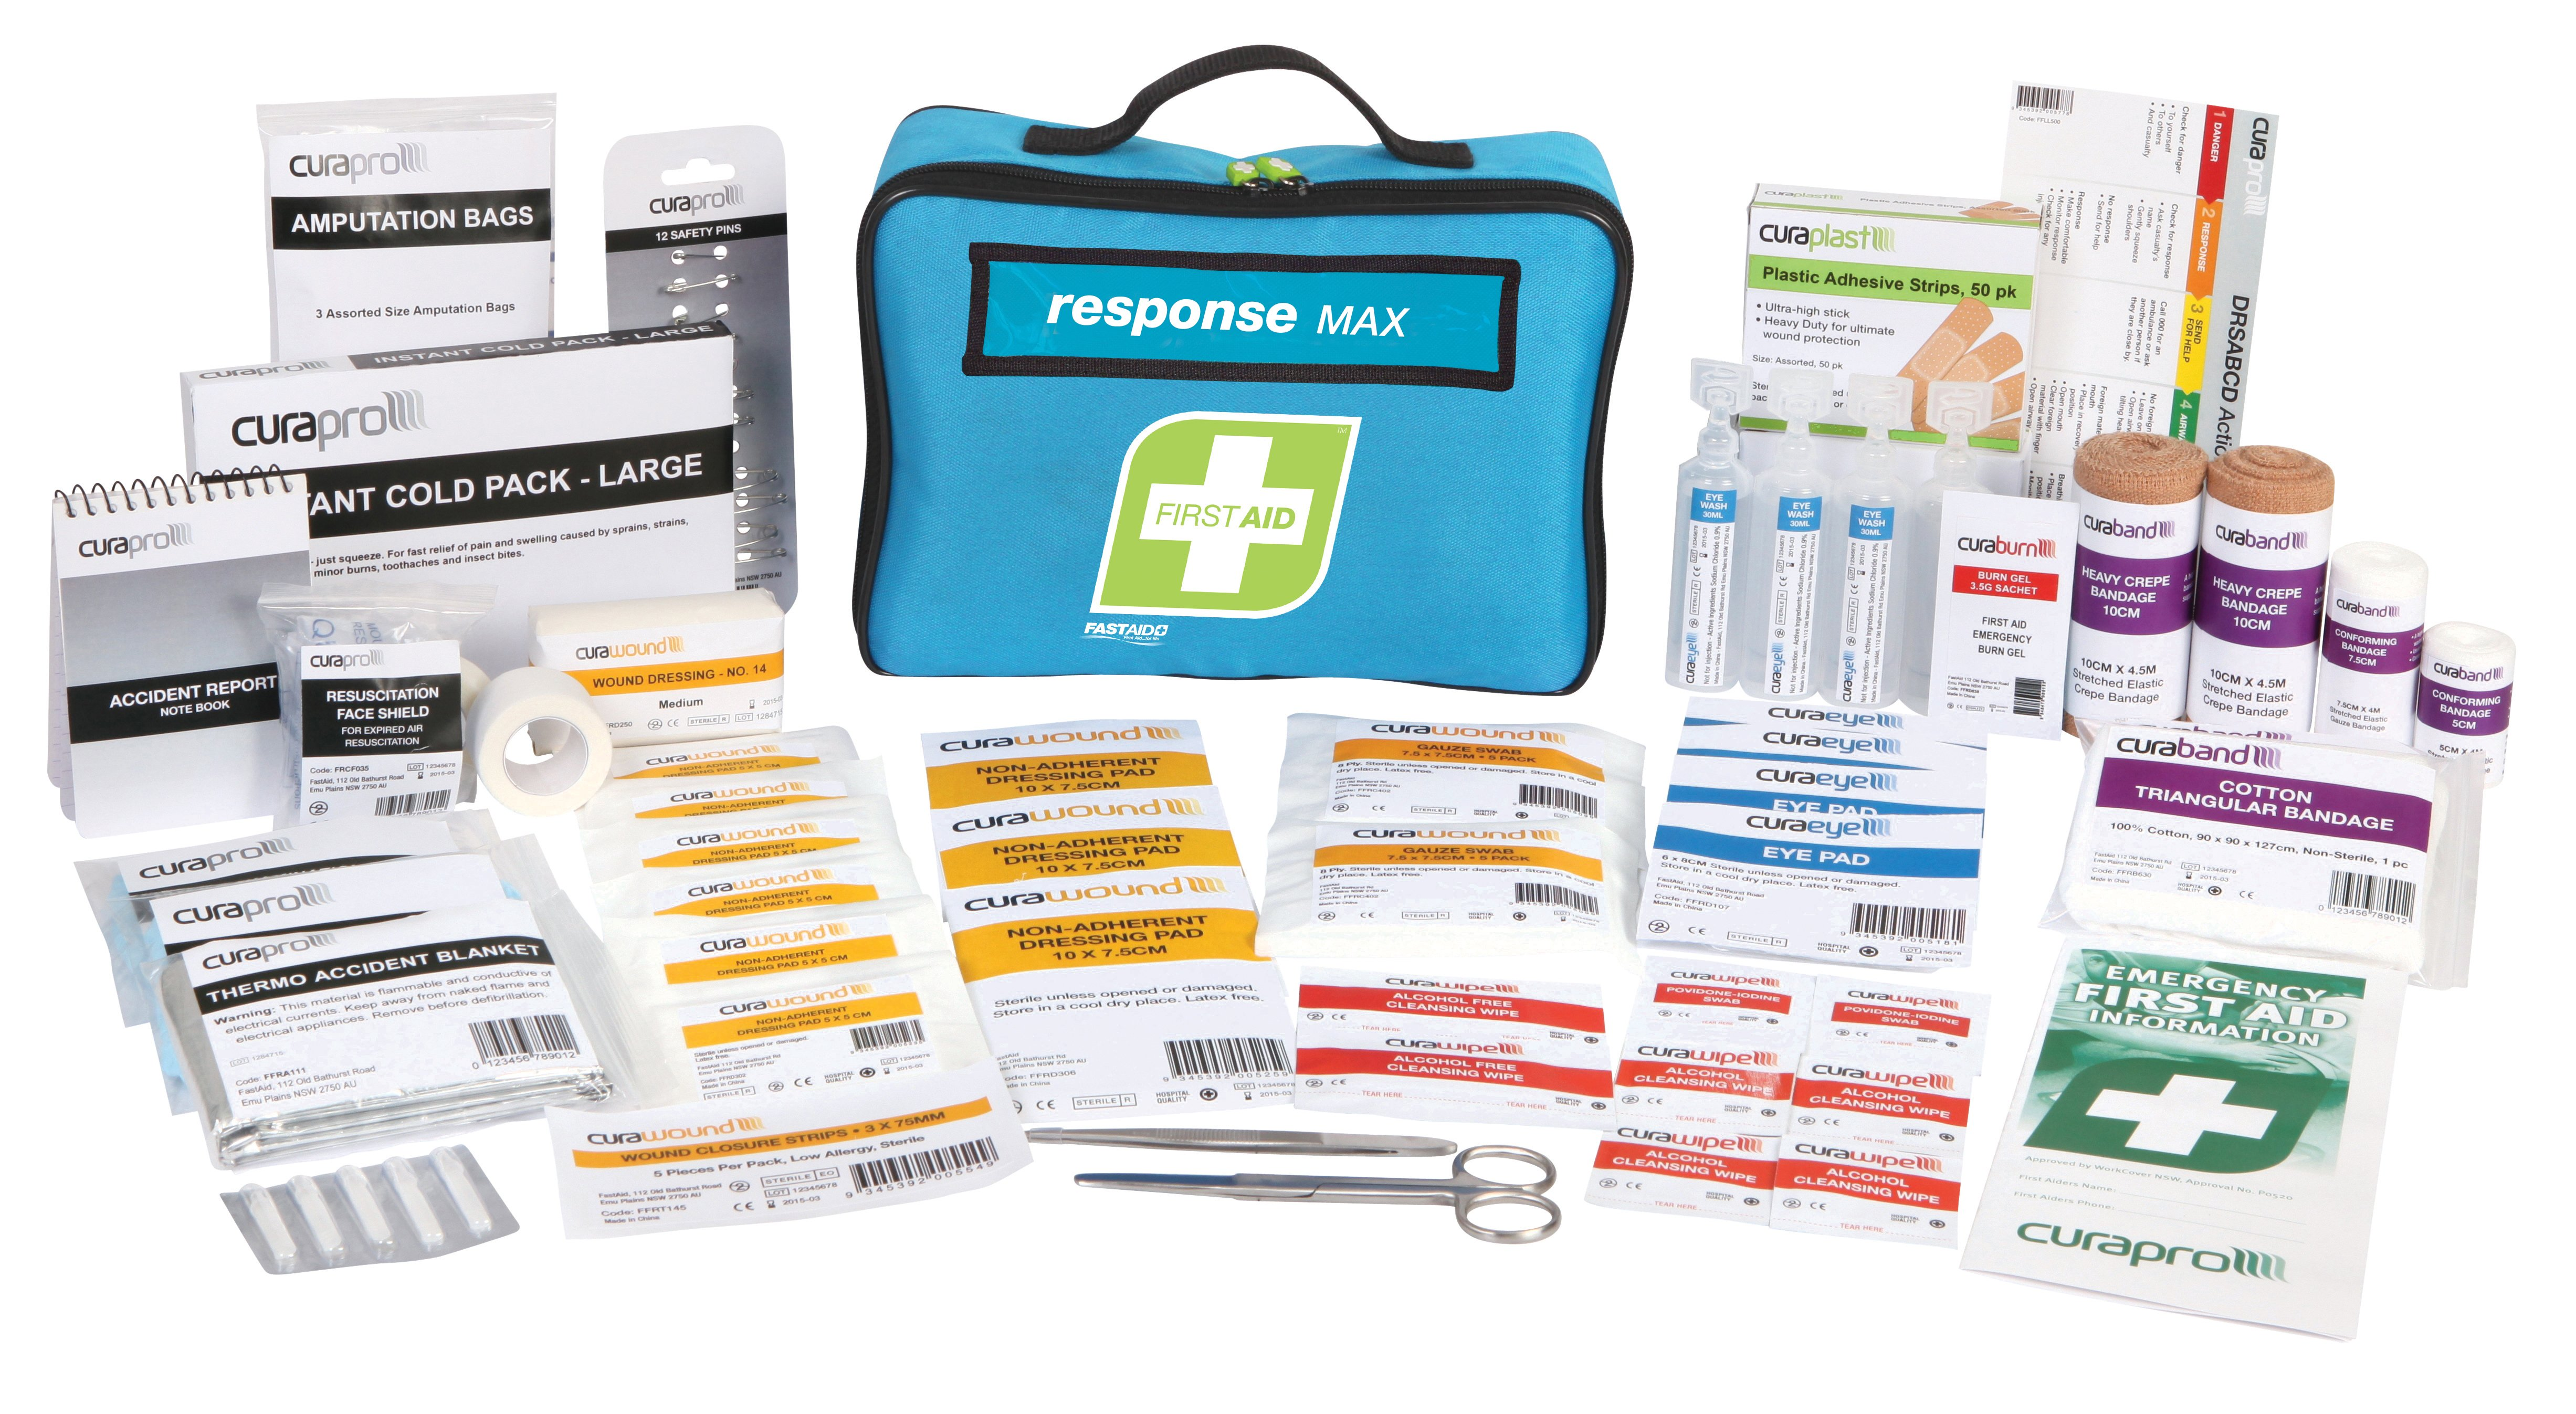 R1 Response Max First Aid Kit, Soft Pack